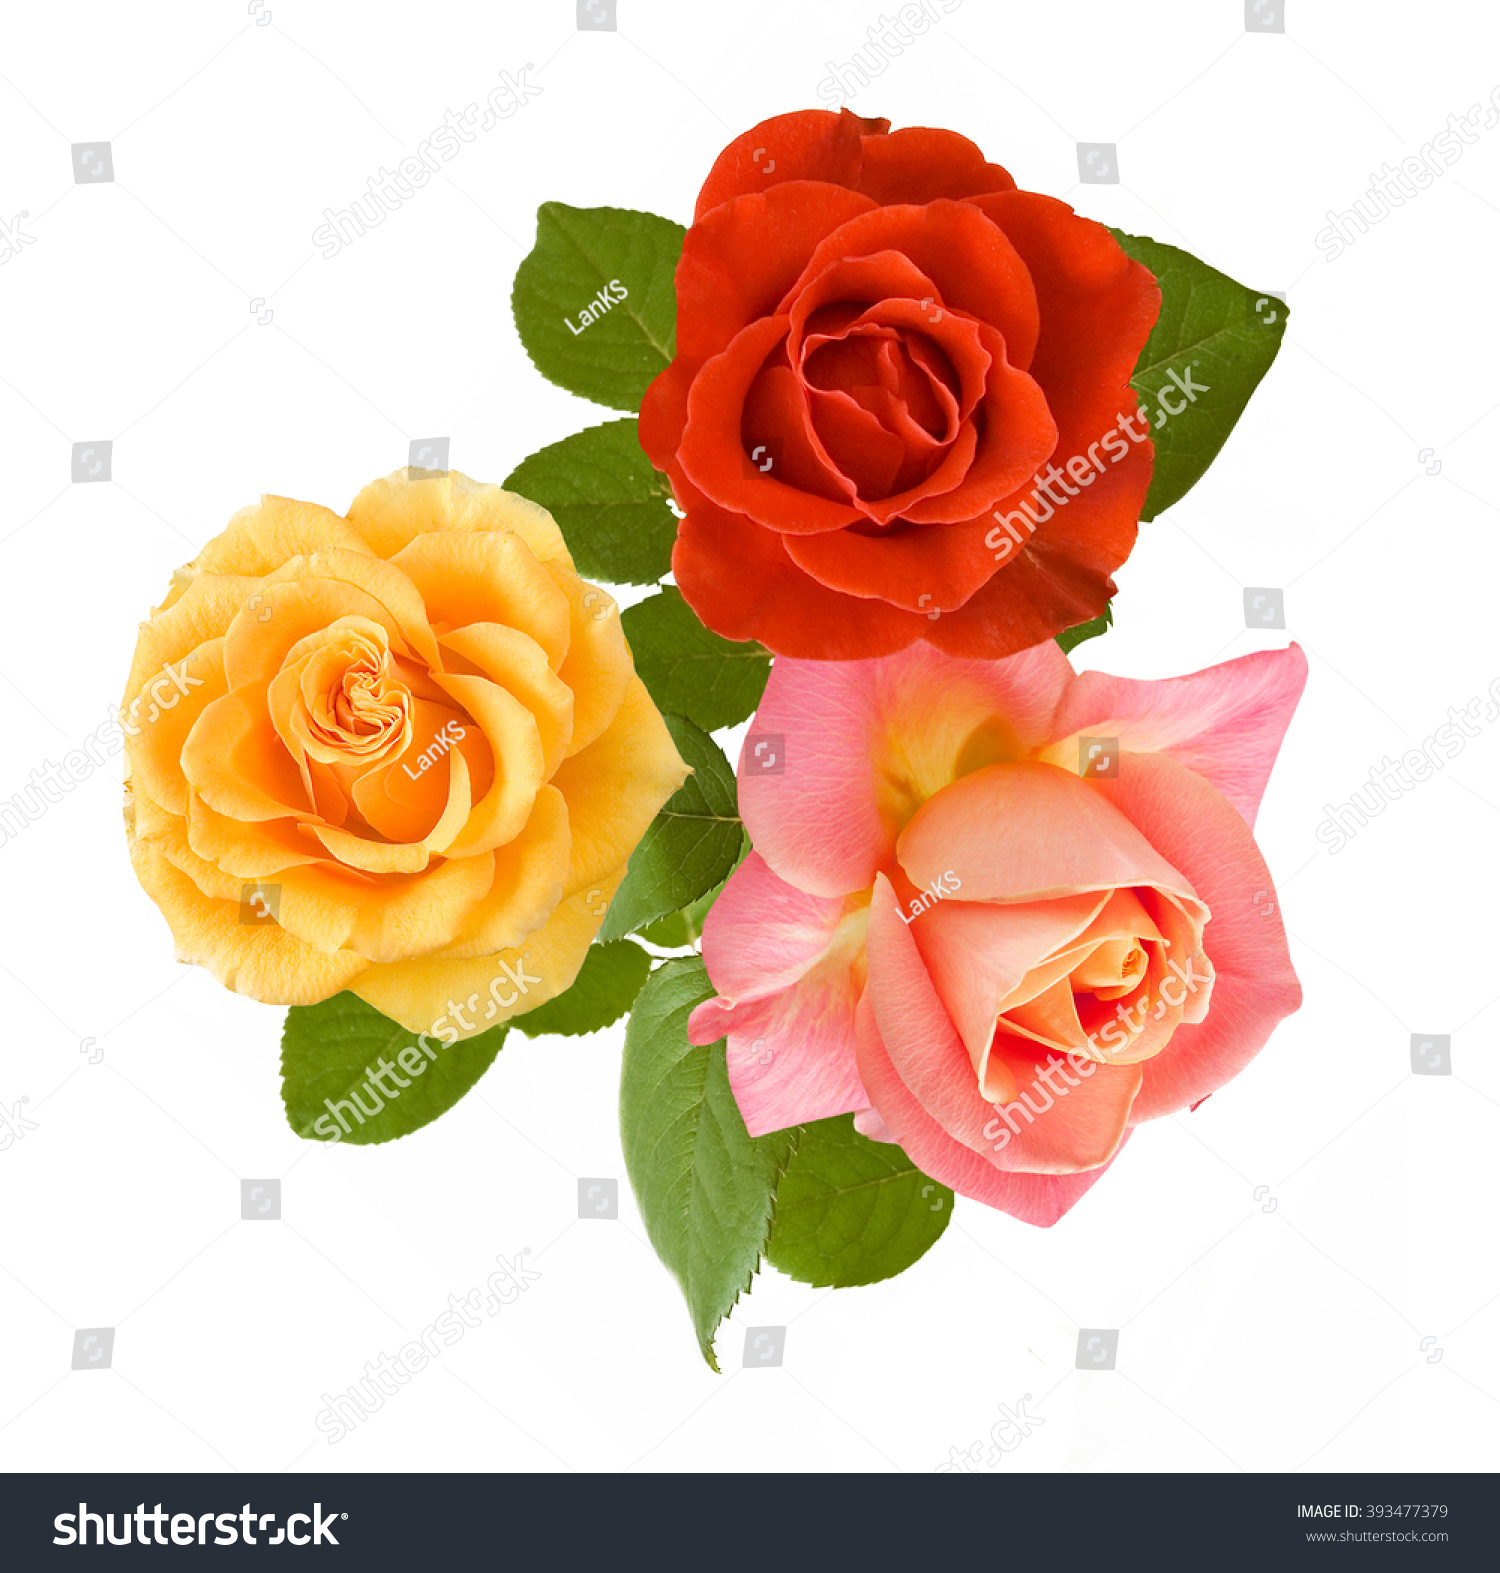 Redyellow And Pink Rose Flowers Bunch Isolated On White Background